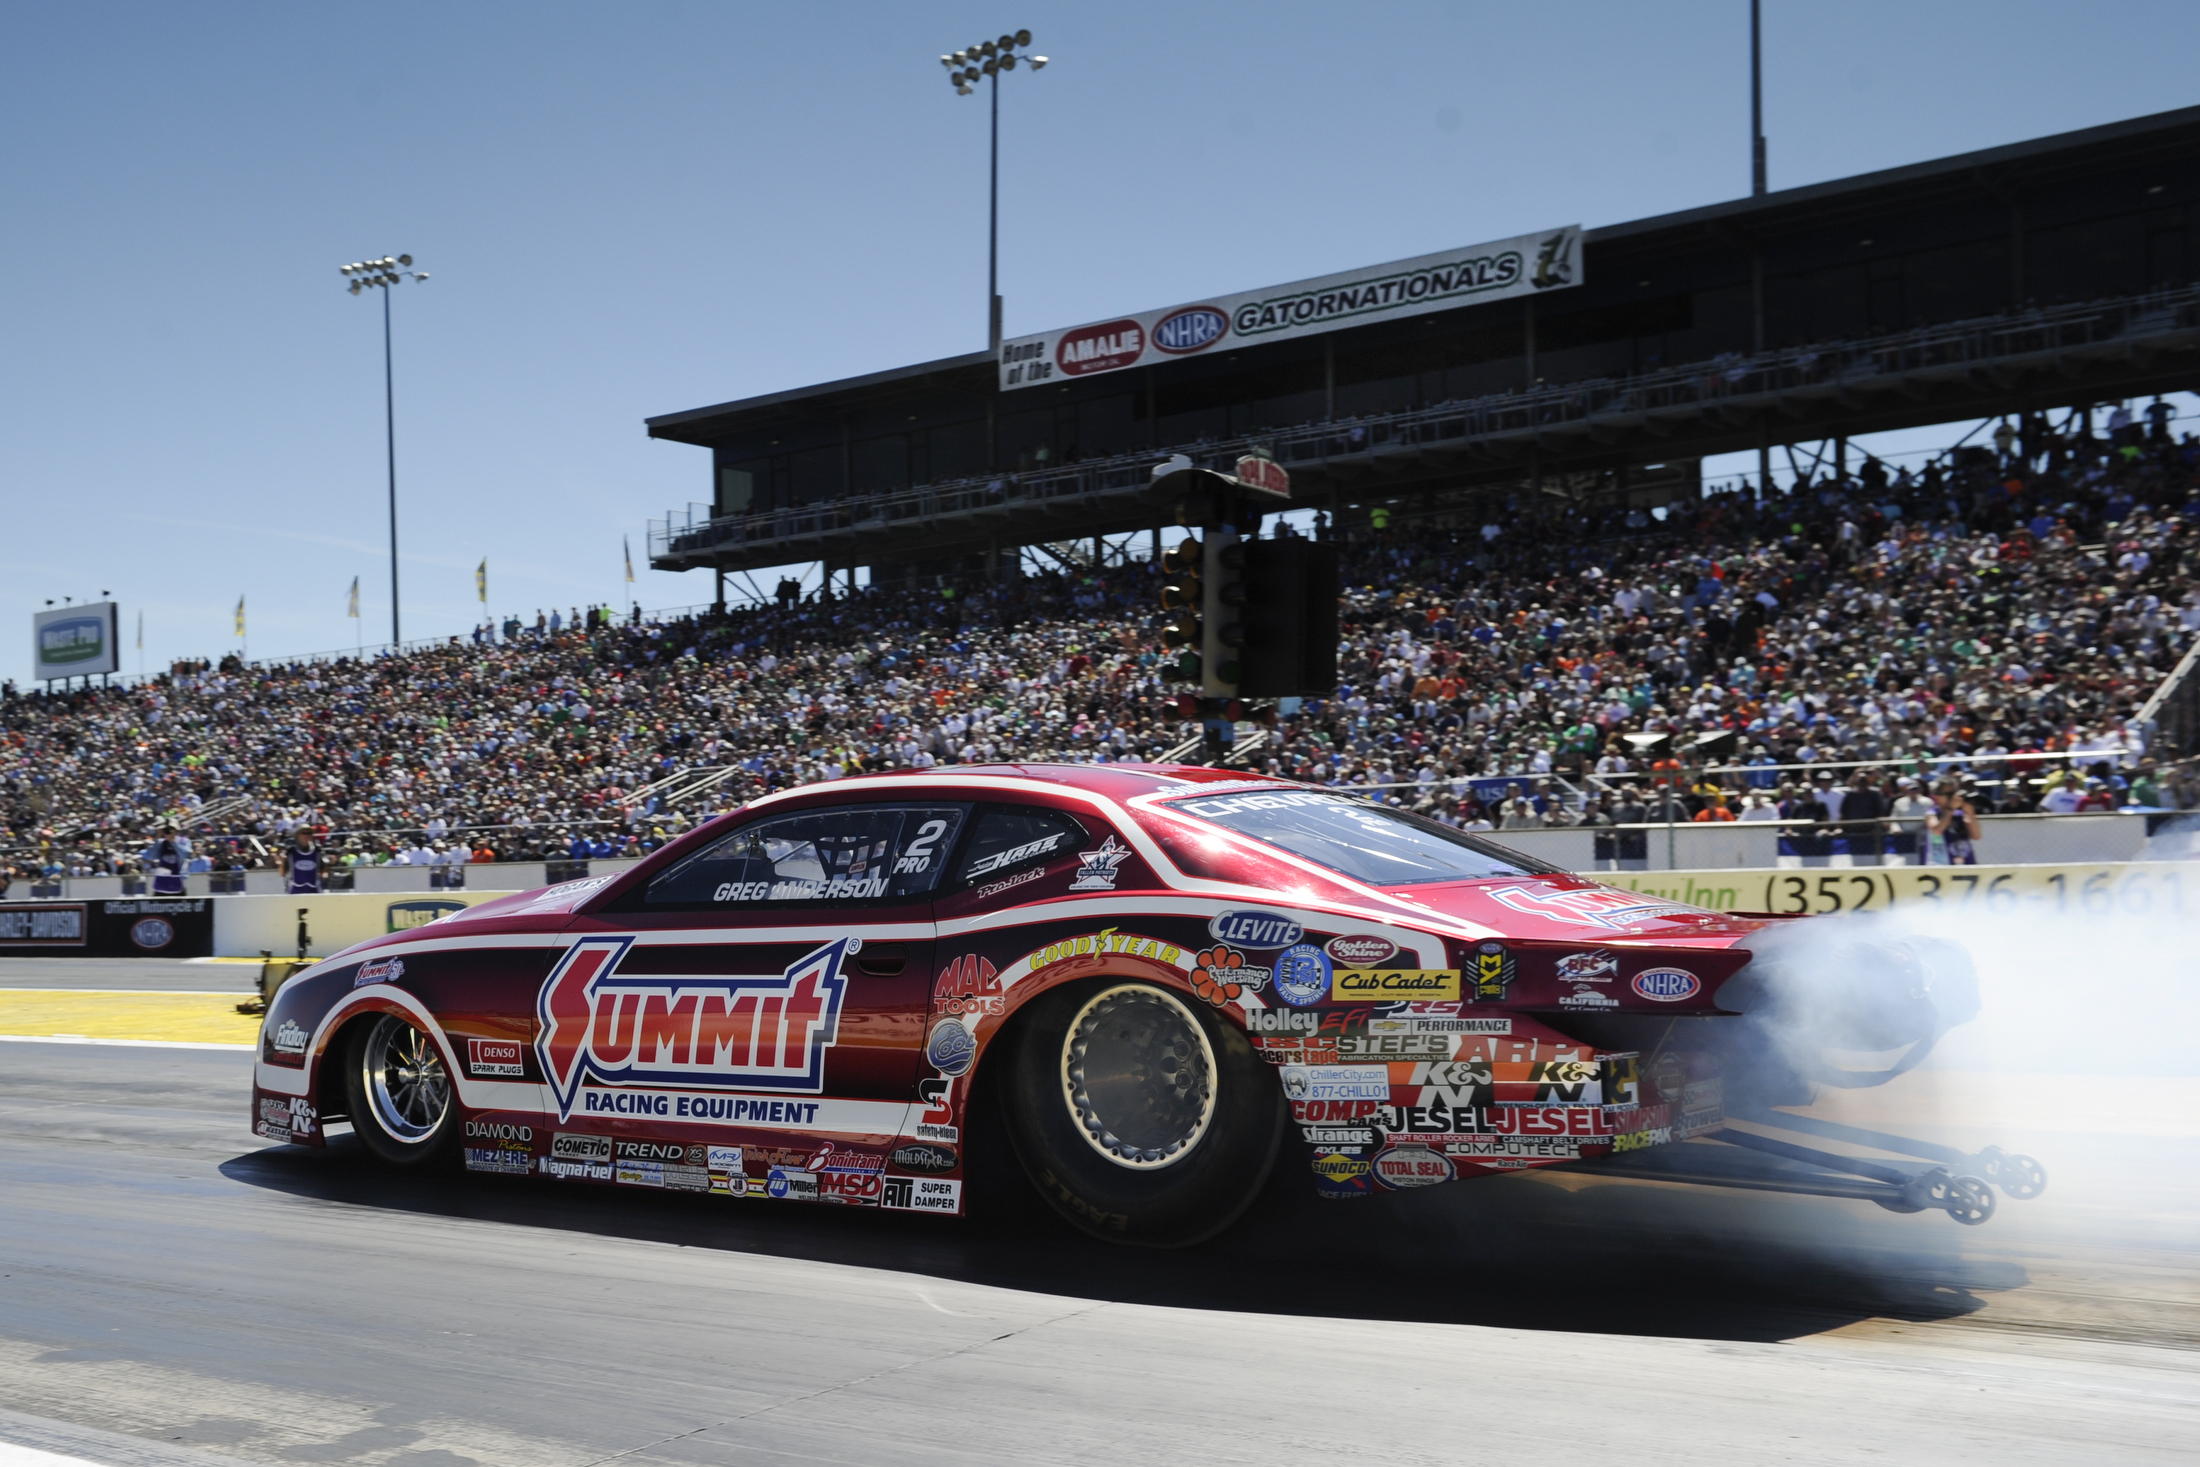 NHRA Pro Stock - Greg Anderson - Saturday - Gainesville - Gatornationals